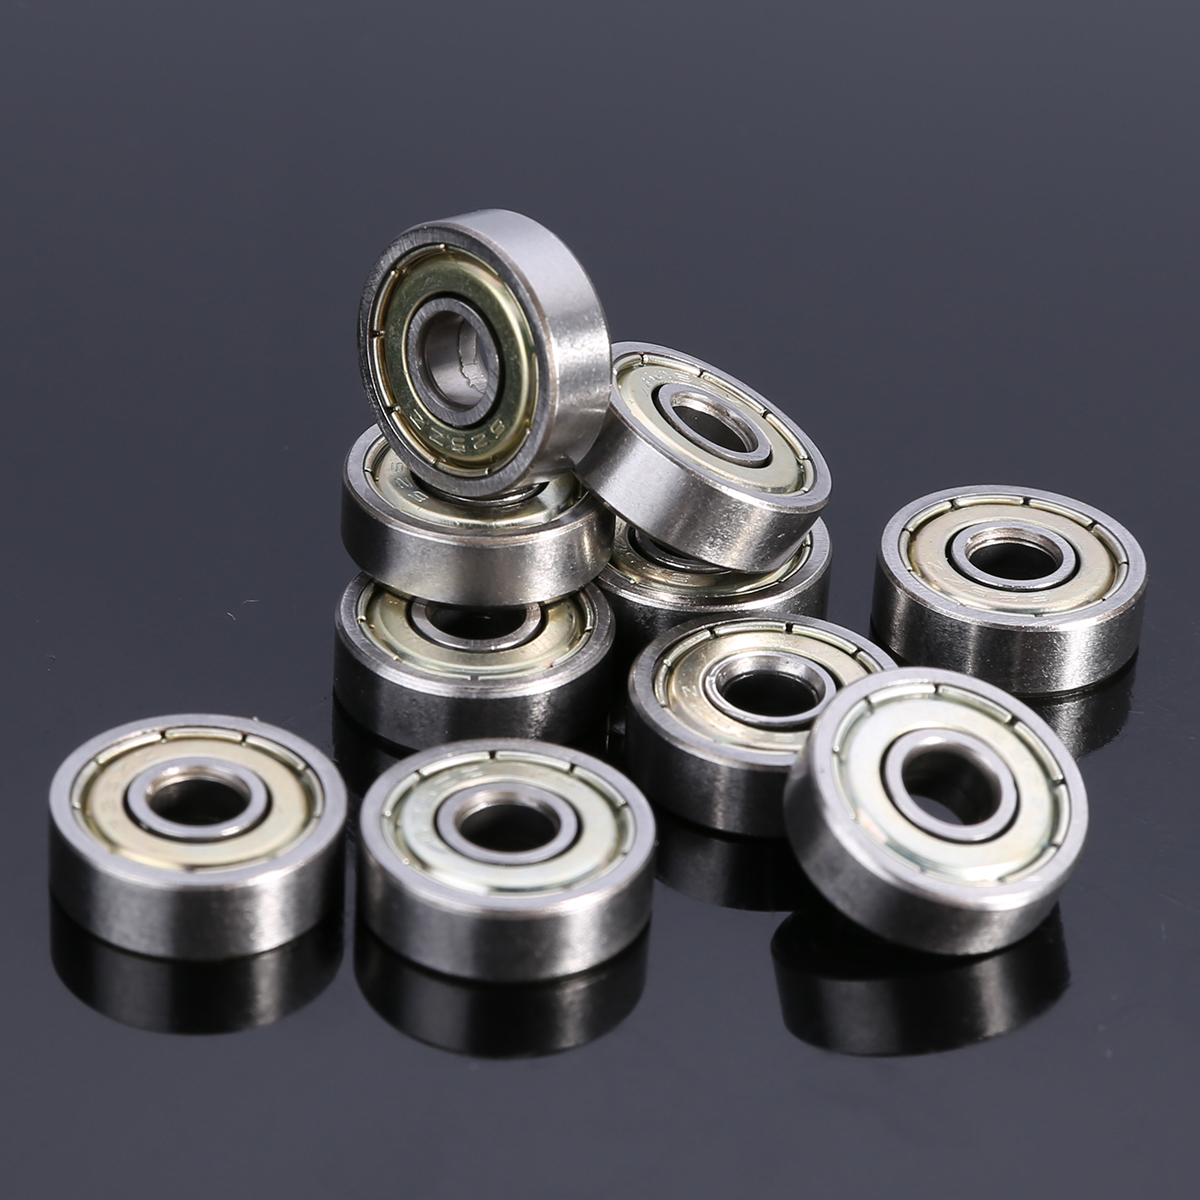 10pcs/Lot New Miniature <font><b>625ZZ</b></font> Ball Bearings 5*16*5mm Mayitr Small Wear Carbon Steel Single Row Deep Groove Radial Ball Bearing image